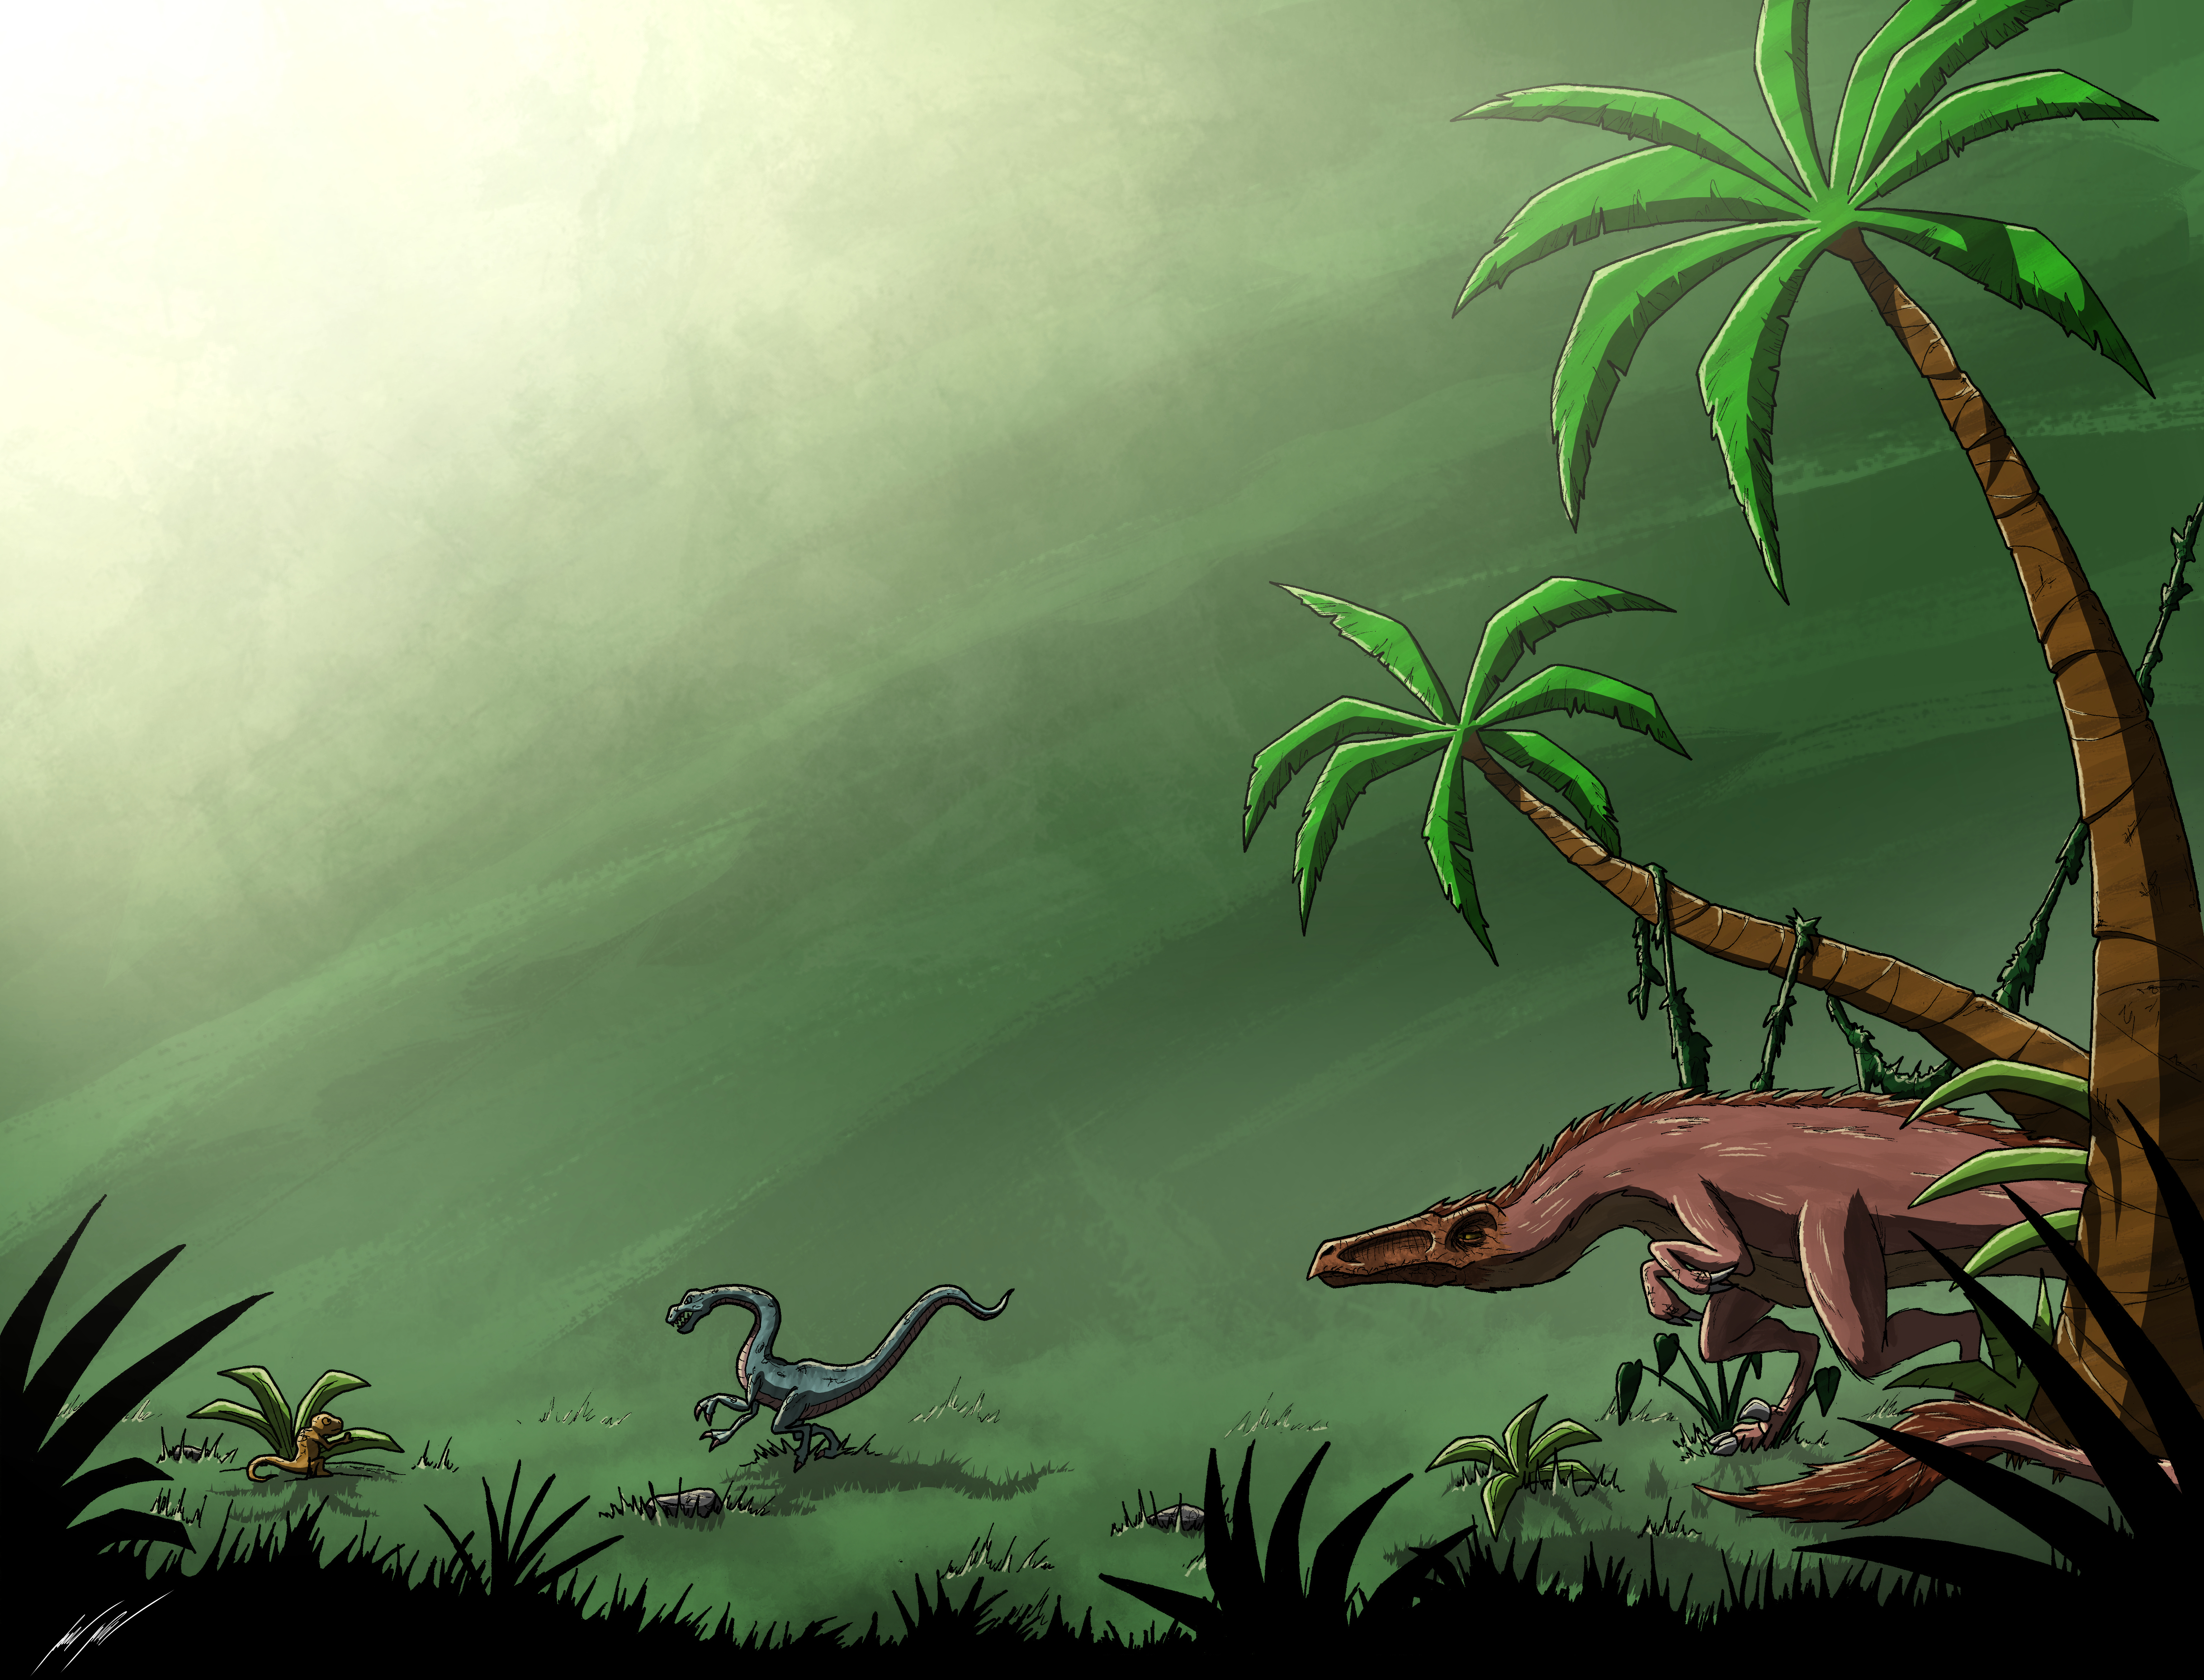 It's a dino-eat-dino world out there. . .